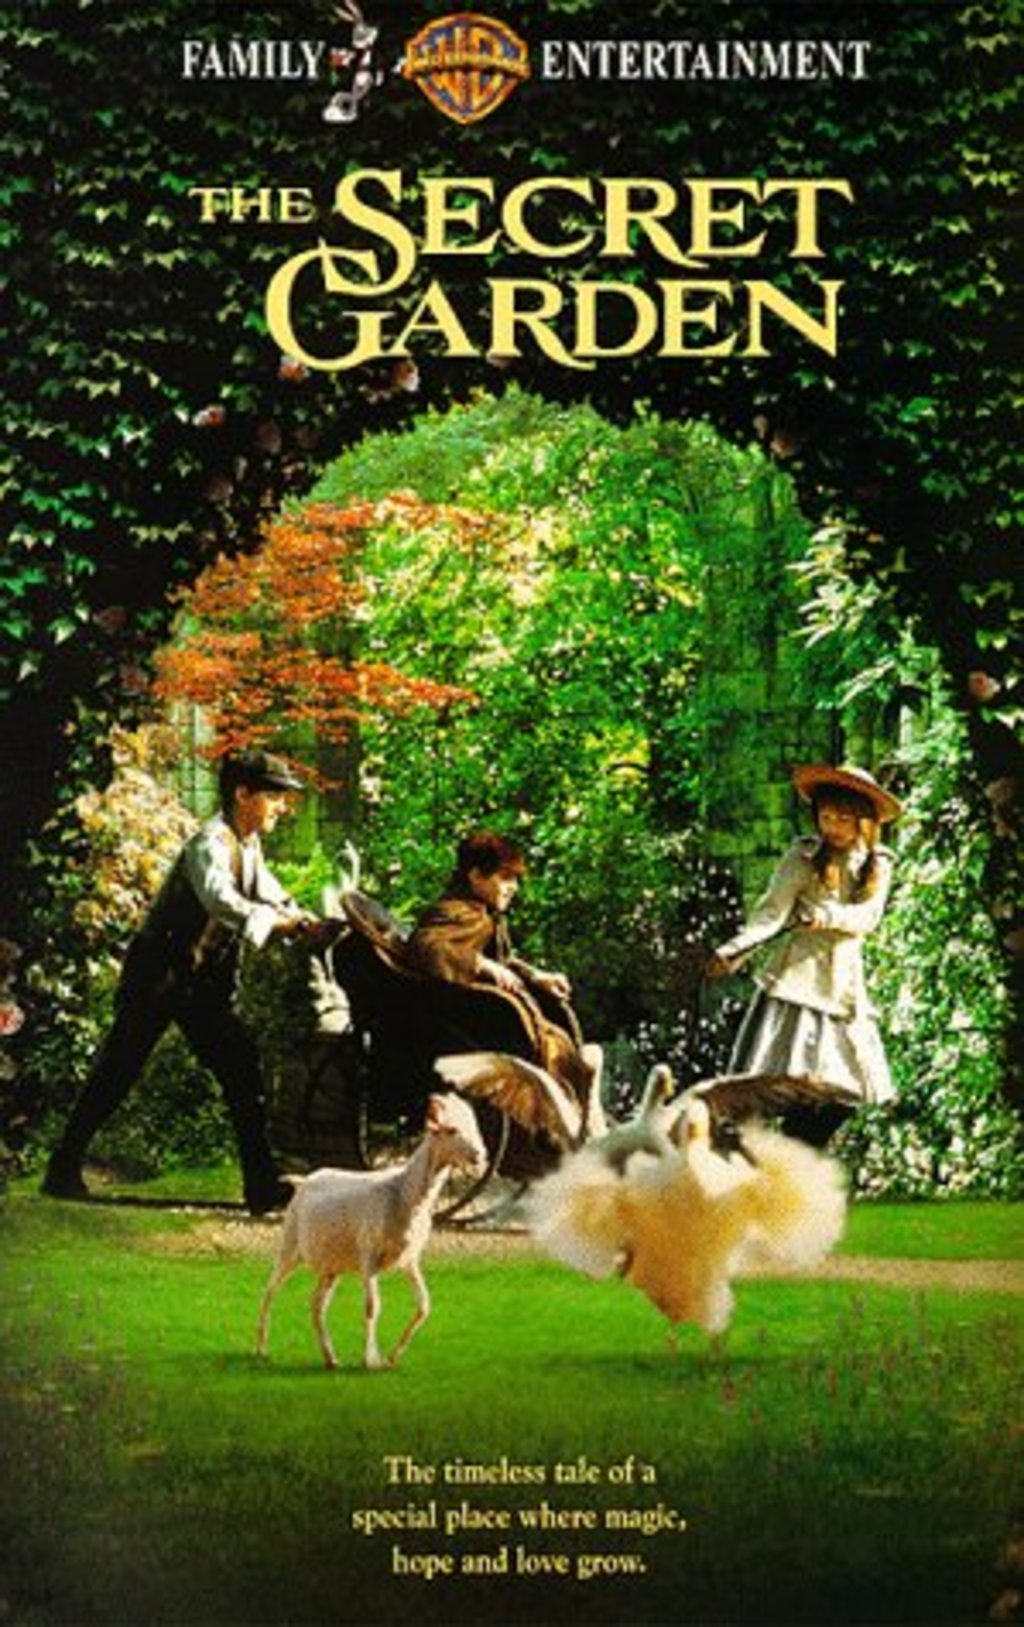 Secret Garden: Watch The Secret Garden On Netflix Today!